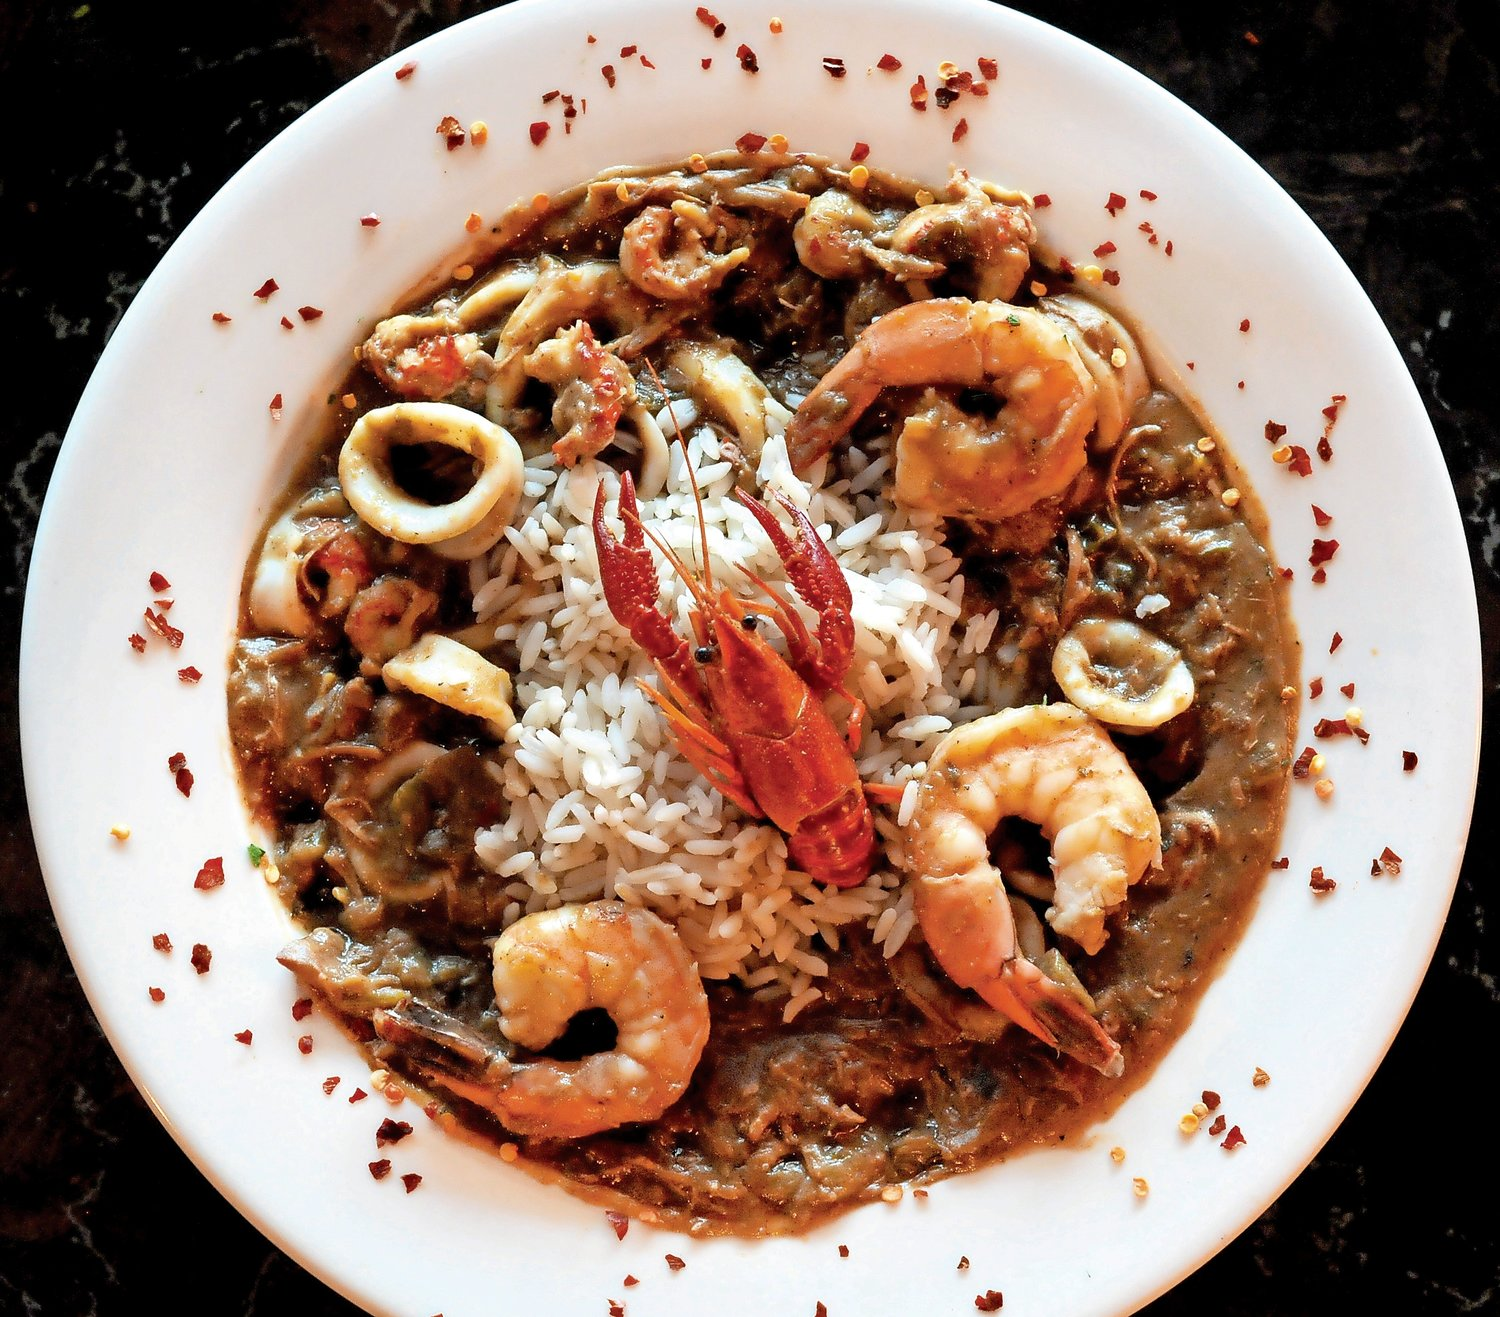 Bayou Jones' classic seafood gumbo gave diners a taste of something they never had before.